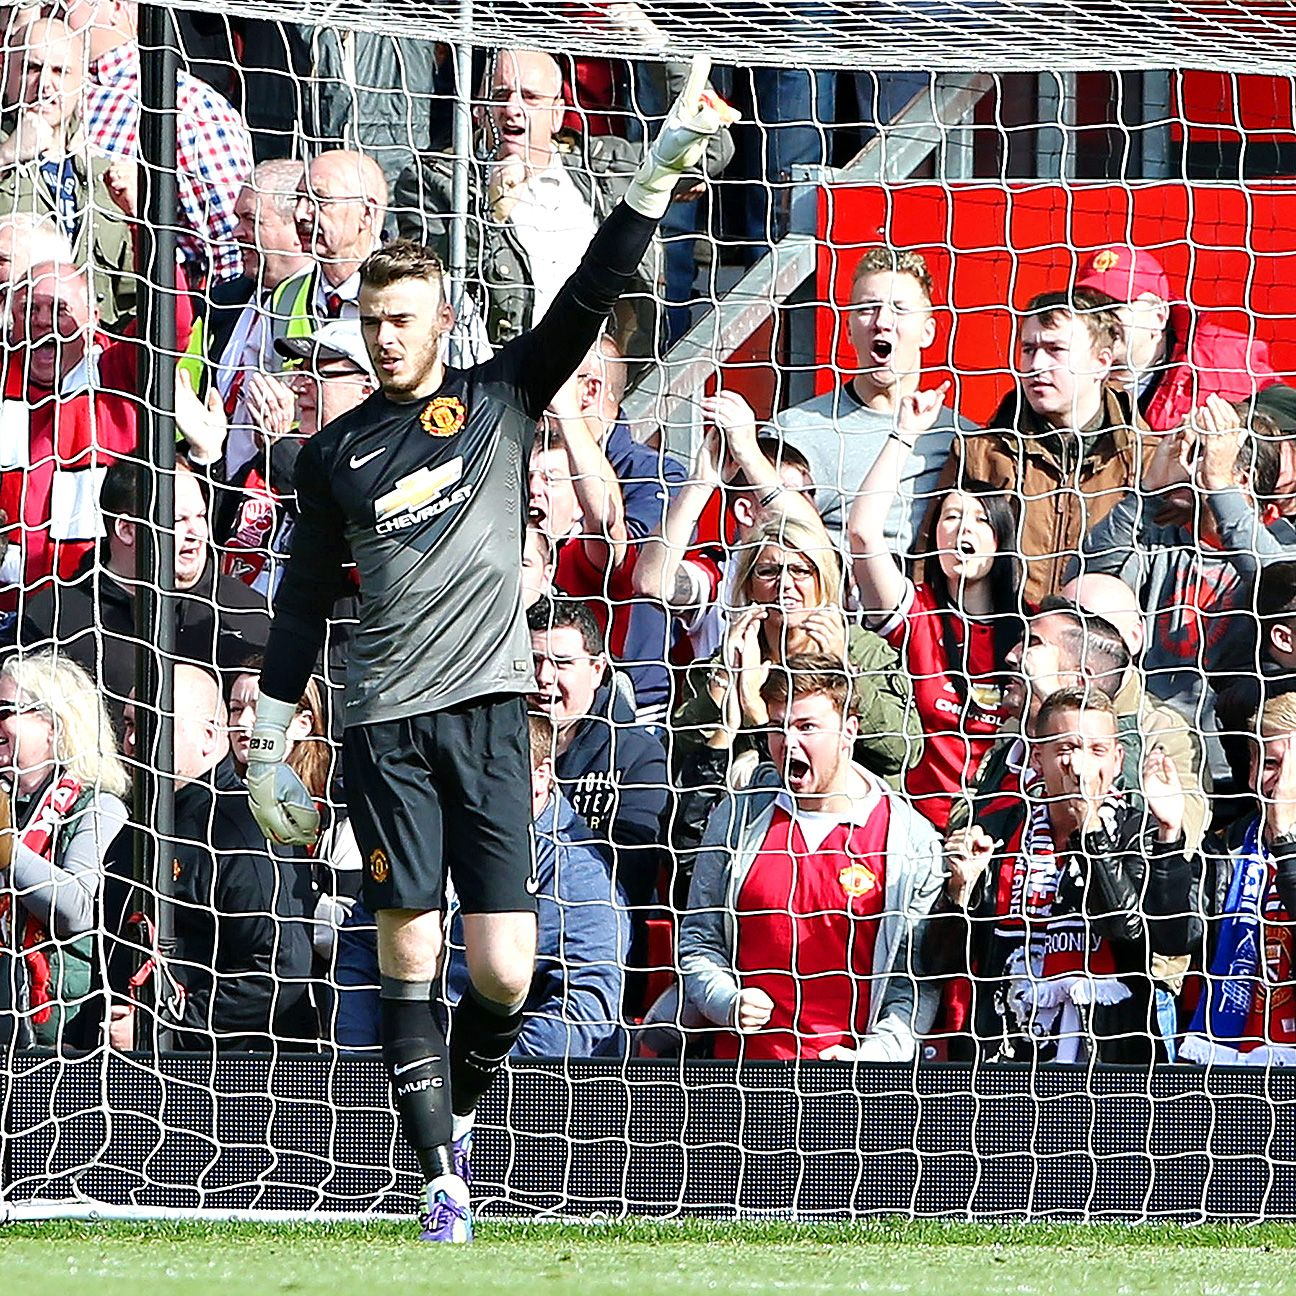 De Gea made the Old Trafford faithful roar his name after saving Leighton Baines' penalty kick last week.